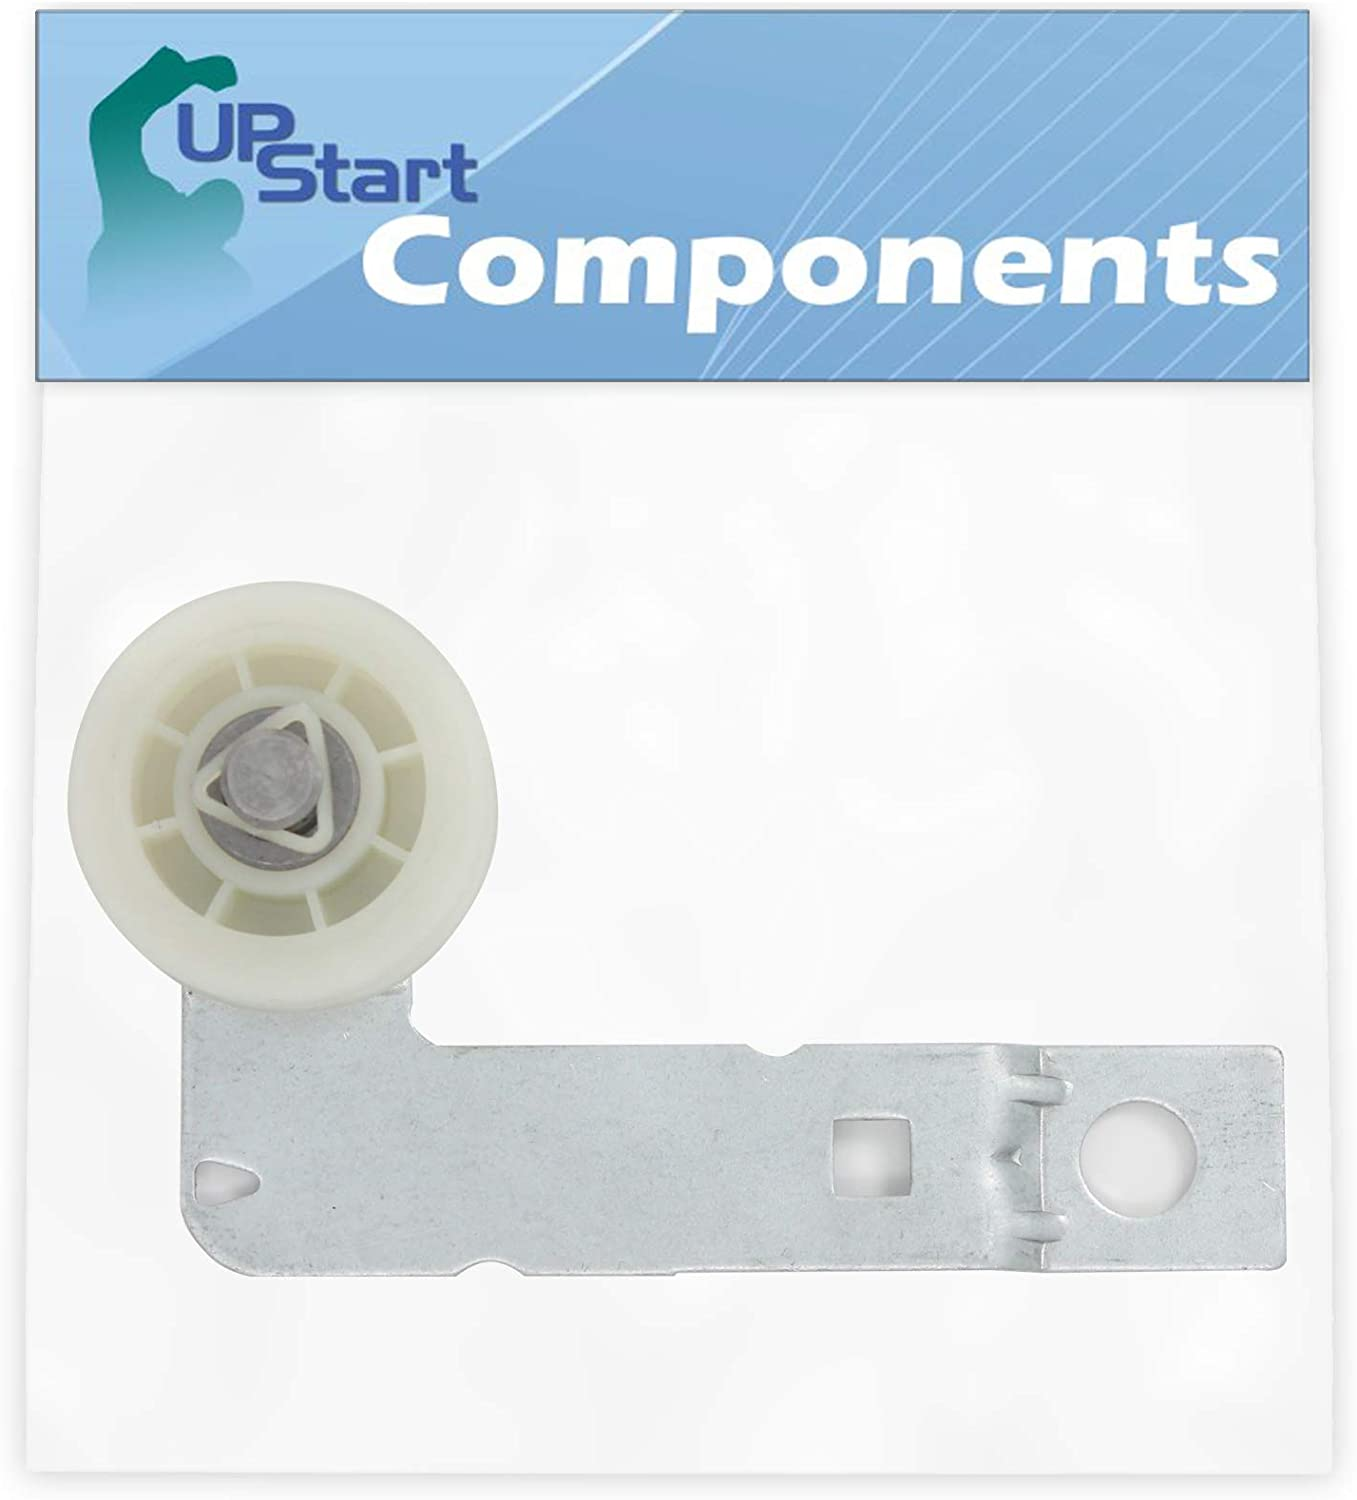 W10837240 Dryer Idler Pulley Replacement for Whirlpool WED8500DC0 Dryer - Compatible with W10547290 3388674 Pulley Assembly - UpStart Components Brand